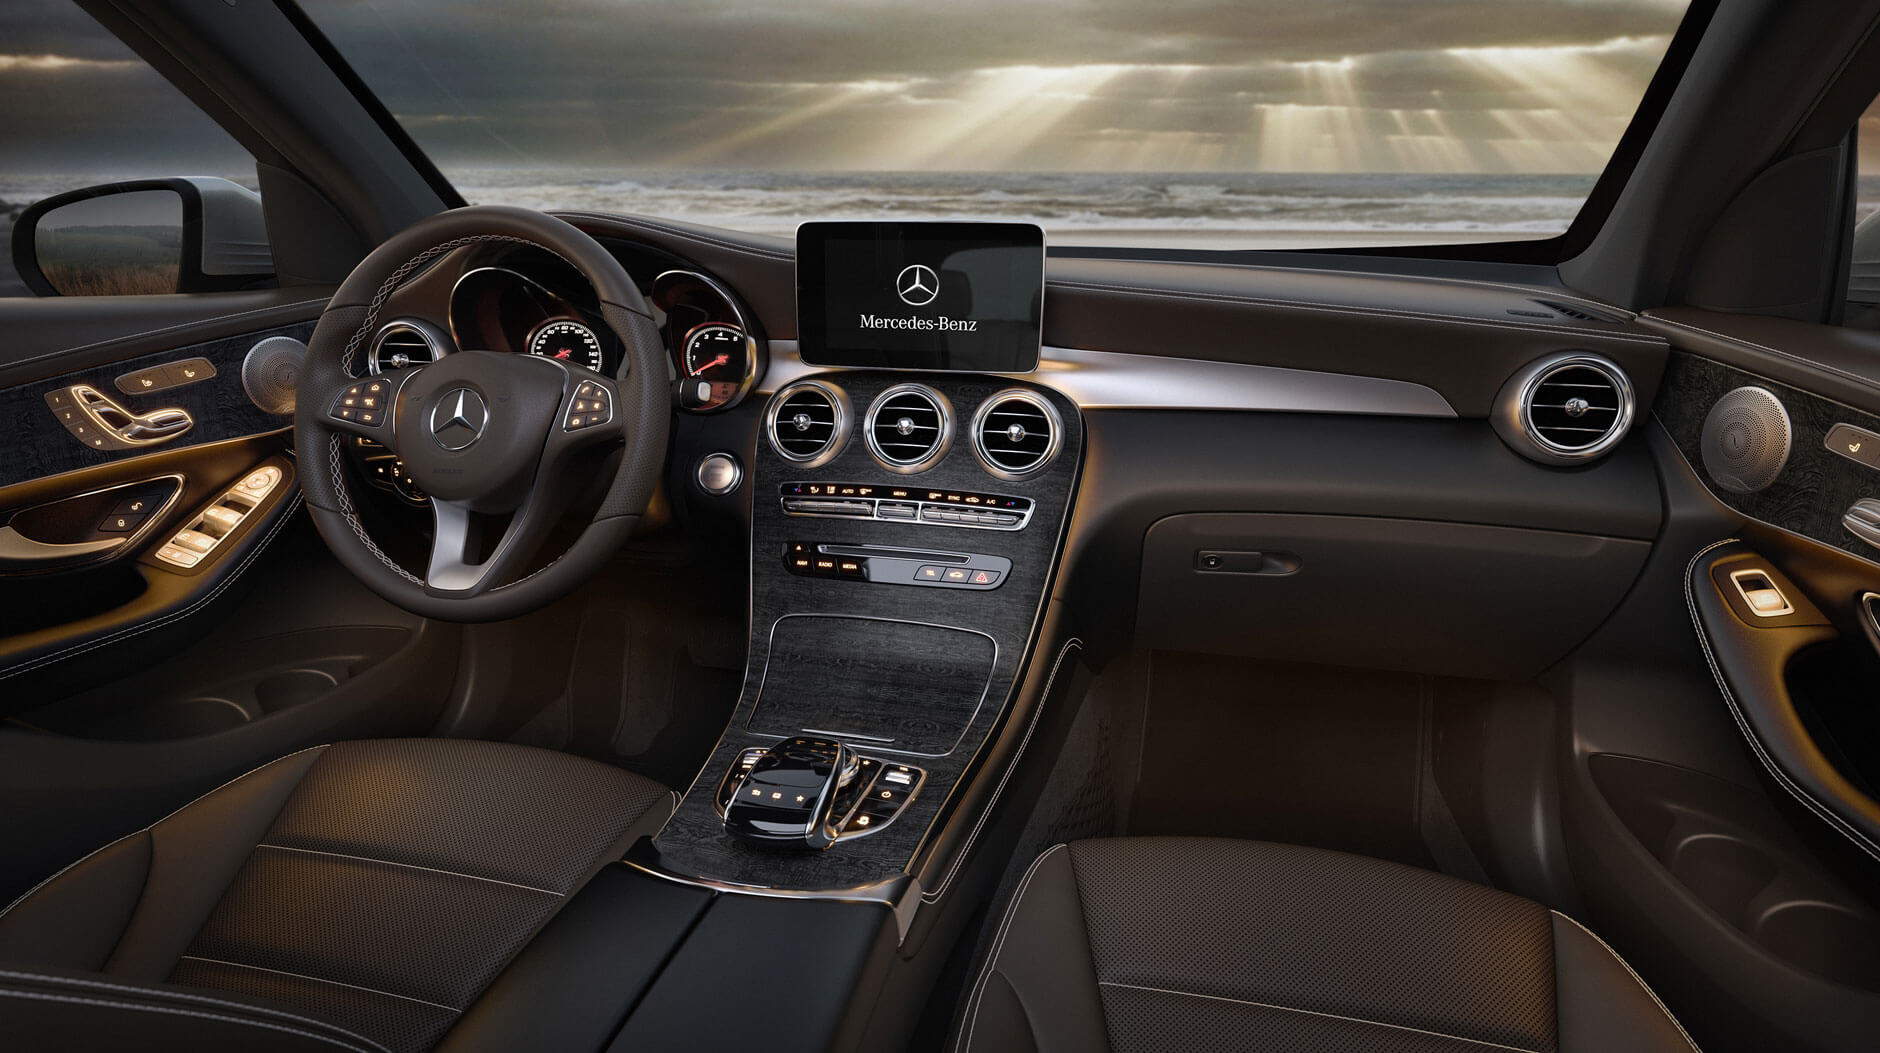 2017 Mercedes-Benz GLC interior technology features